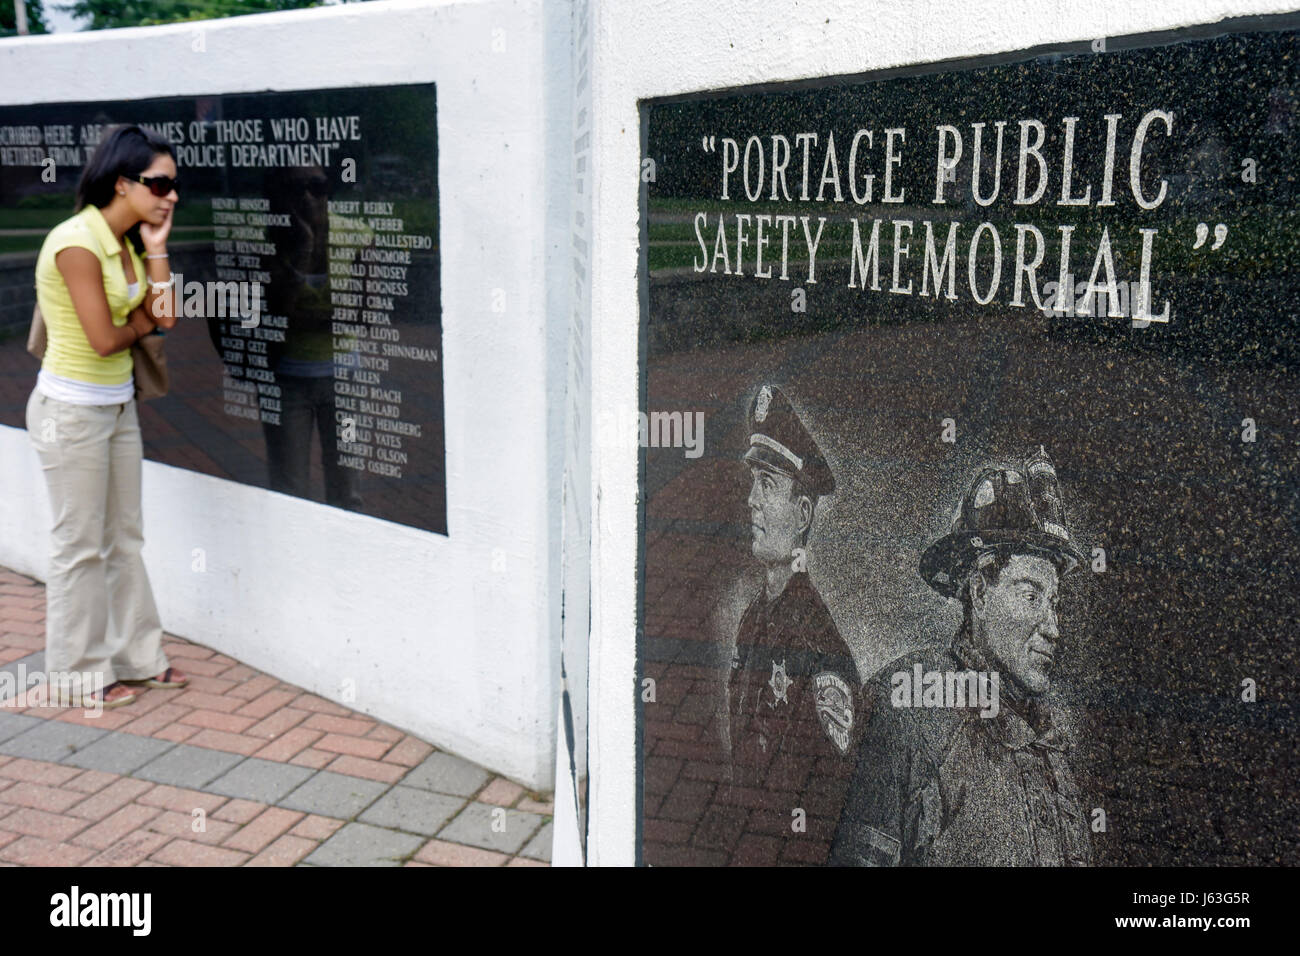 Indiana Portage Gilbert Memorial Park Portage Public Safety Memorial police fire department honor retiree community - Stock Image